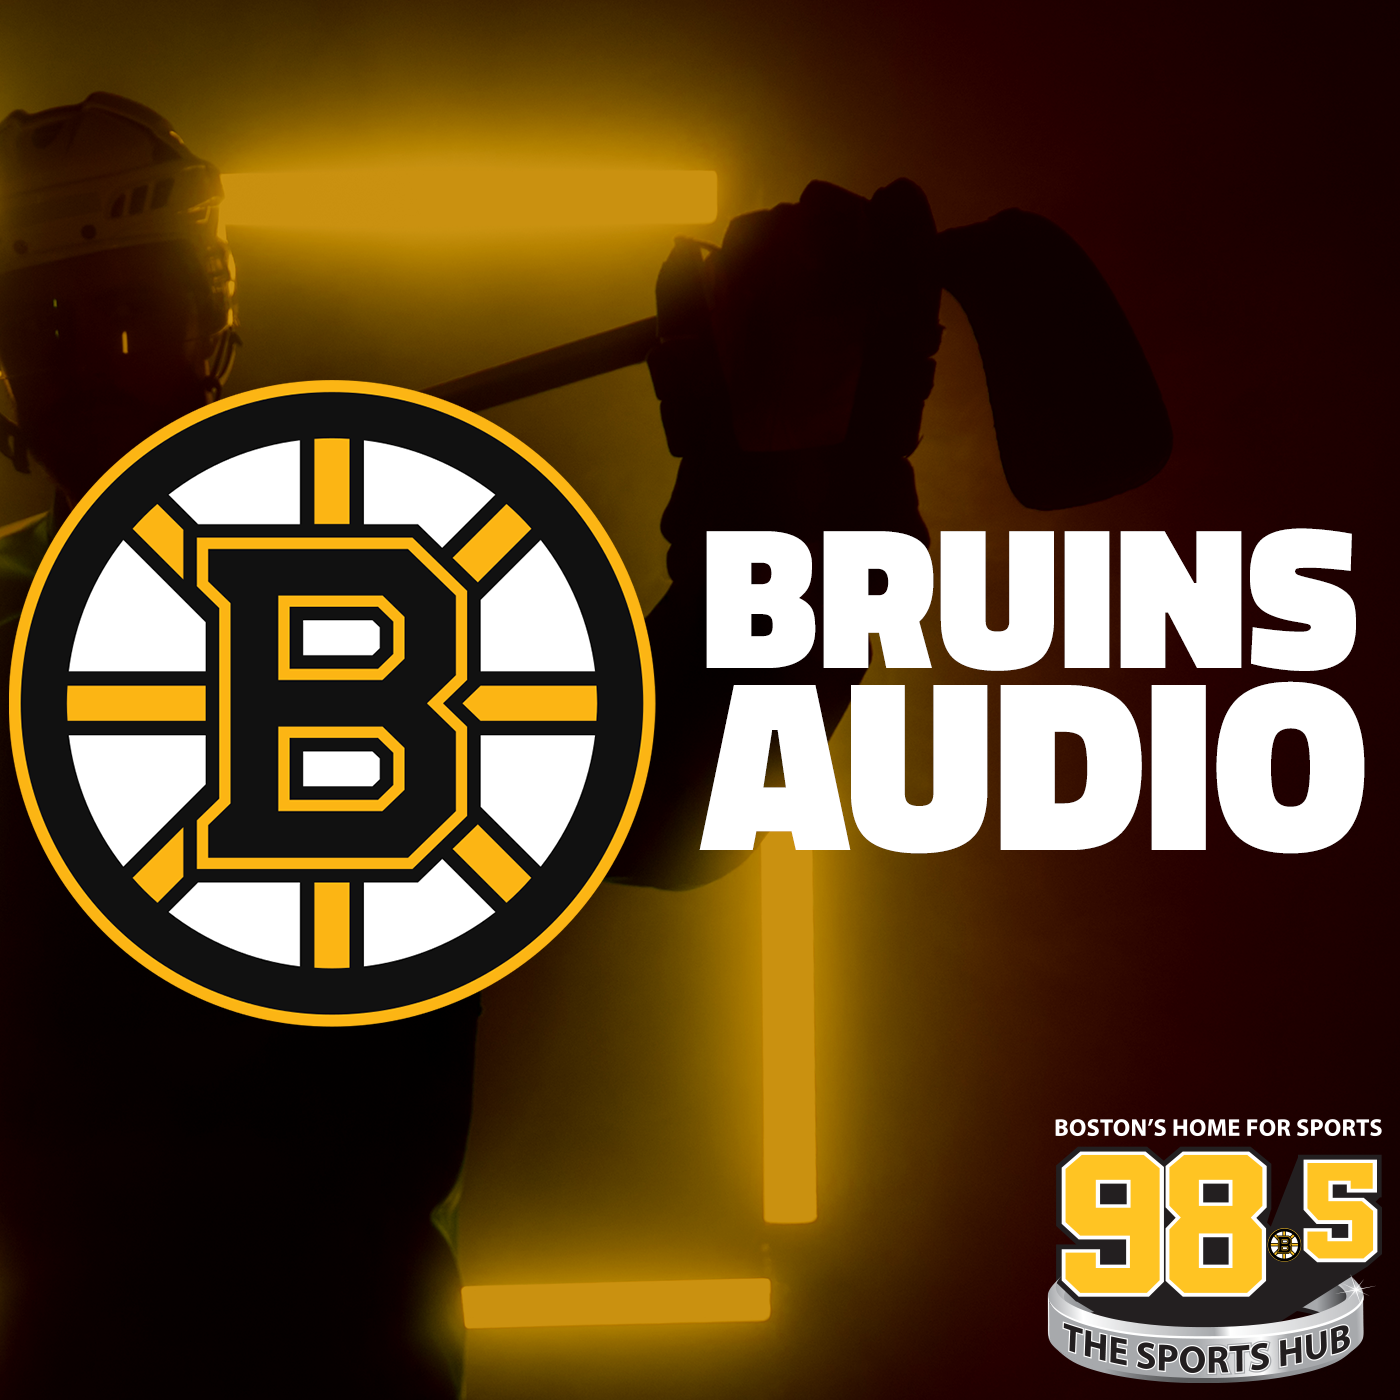 Bob Beers sits down with Bruins coach Bruce Cassidy ahead of B's-Caps at the Garden - Bruins On 98.5 The Sports Hub - Omny.fm